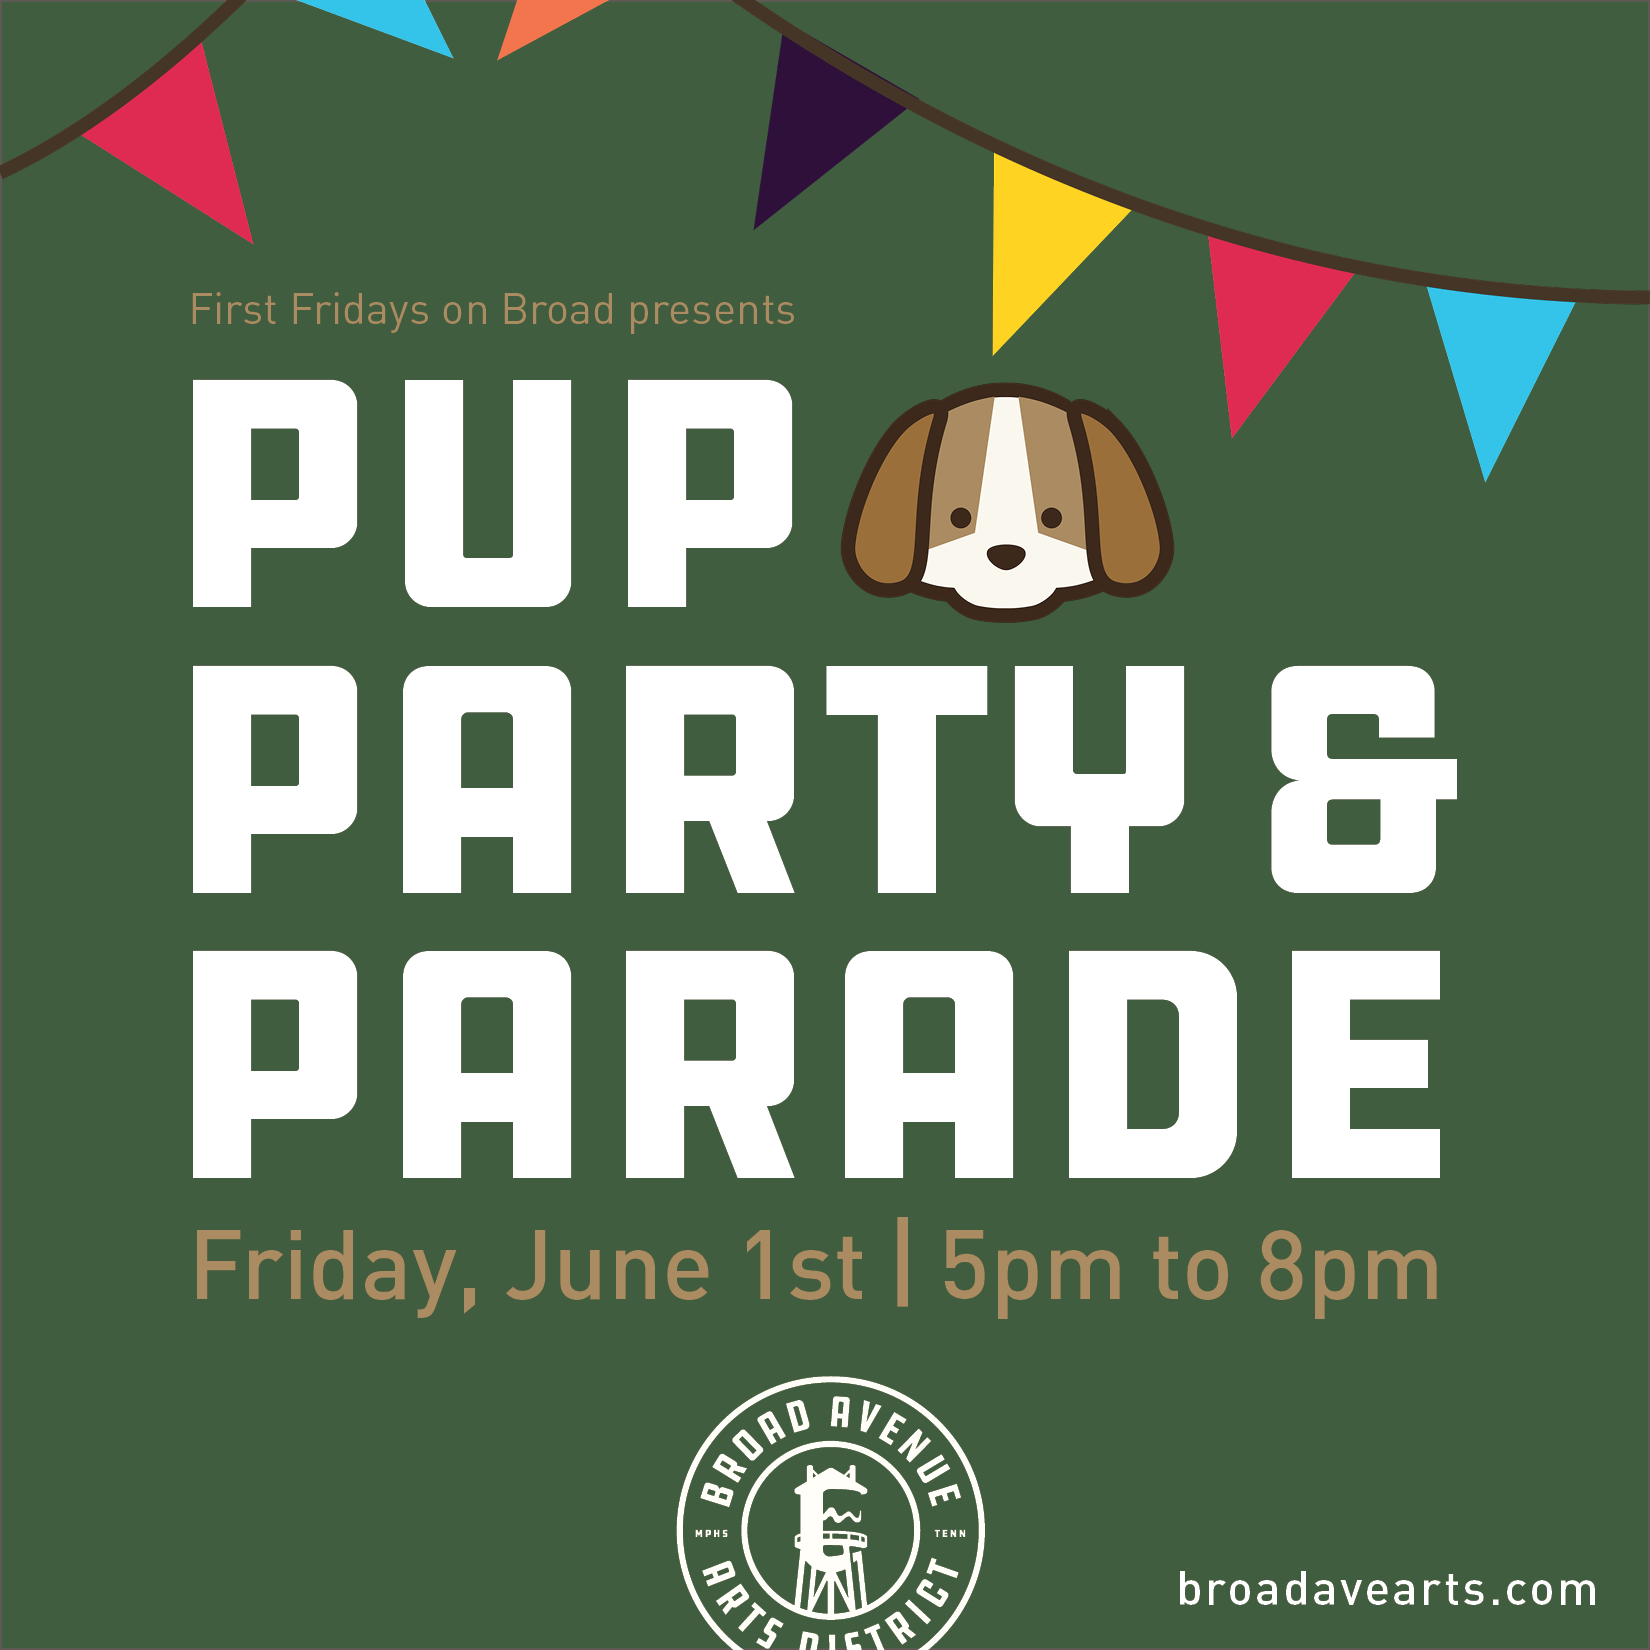 "Join us for our furriest First Friday of the year!  June 1, 5-8pm  Parade 7:30 in the bike lane on Broad Avenue  Lots of ""puptivites"" for your furry friend on the street:  T Clifton Art will have Delta Bites with their homemade dog treats  City & State will be serving ""puppuccinos"" for a small donation to Streetdog Foundation  Falling Into Place Style Your Doggie with local fashion stylist Styled by LD.  Five in One Social Club will have Amurica photo booth in front of their shop.  Maximo's on Broad Dog Friendly patio  The Cove Bar pet friendly with water bowls and treats  Paper&Clayand Question the Answerwill host local artist Maggie Russell. Stop by their studio on Hollywood to sign up. Maggie will snap a photo of your pup to work from then you can pick up your sketch at the end of the event!  Bingham & Broad tba  Merchants on Broad will host a pet / owner look alike contest.  Hollywood Feed will have a free gift with $15 purchase and a drawing for a cake from their bakery on Union!"